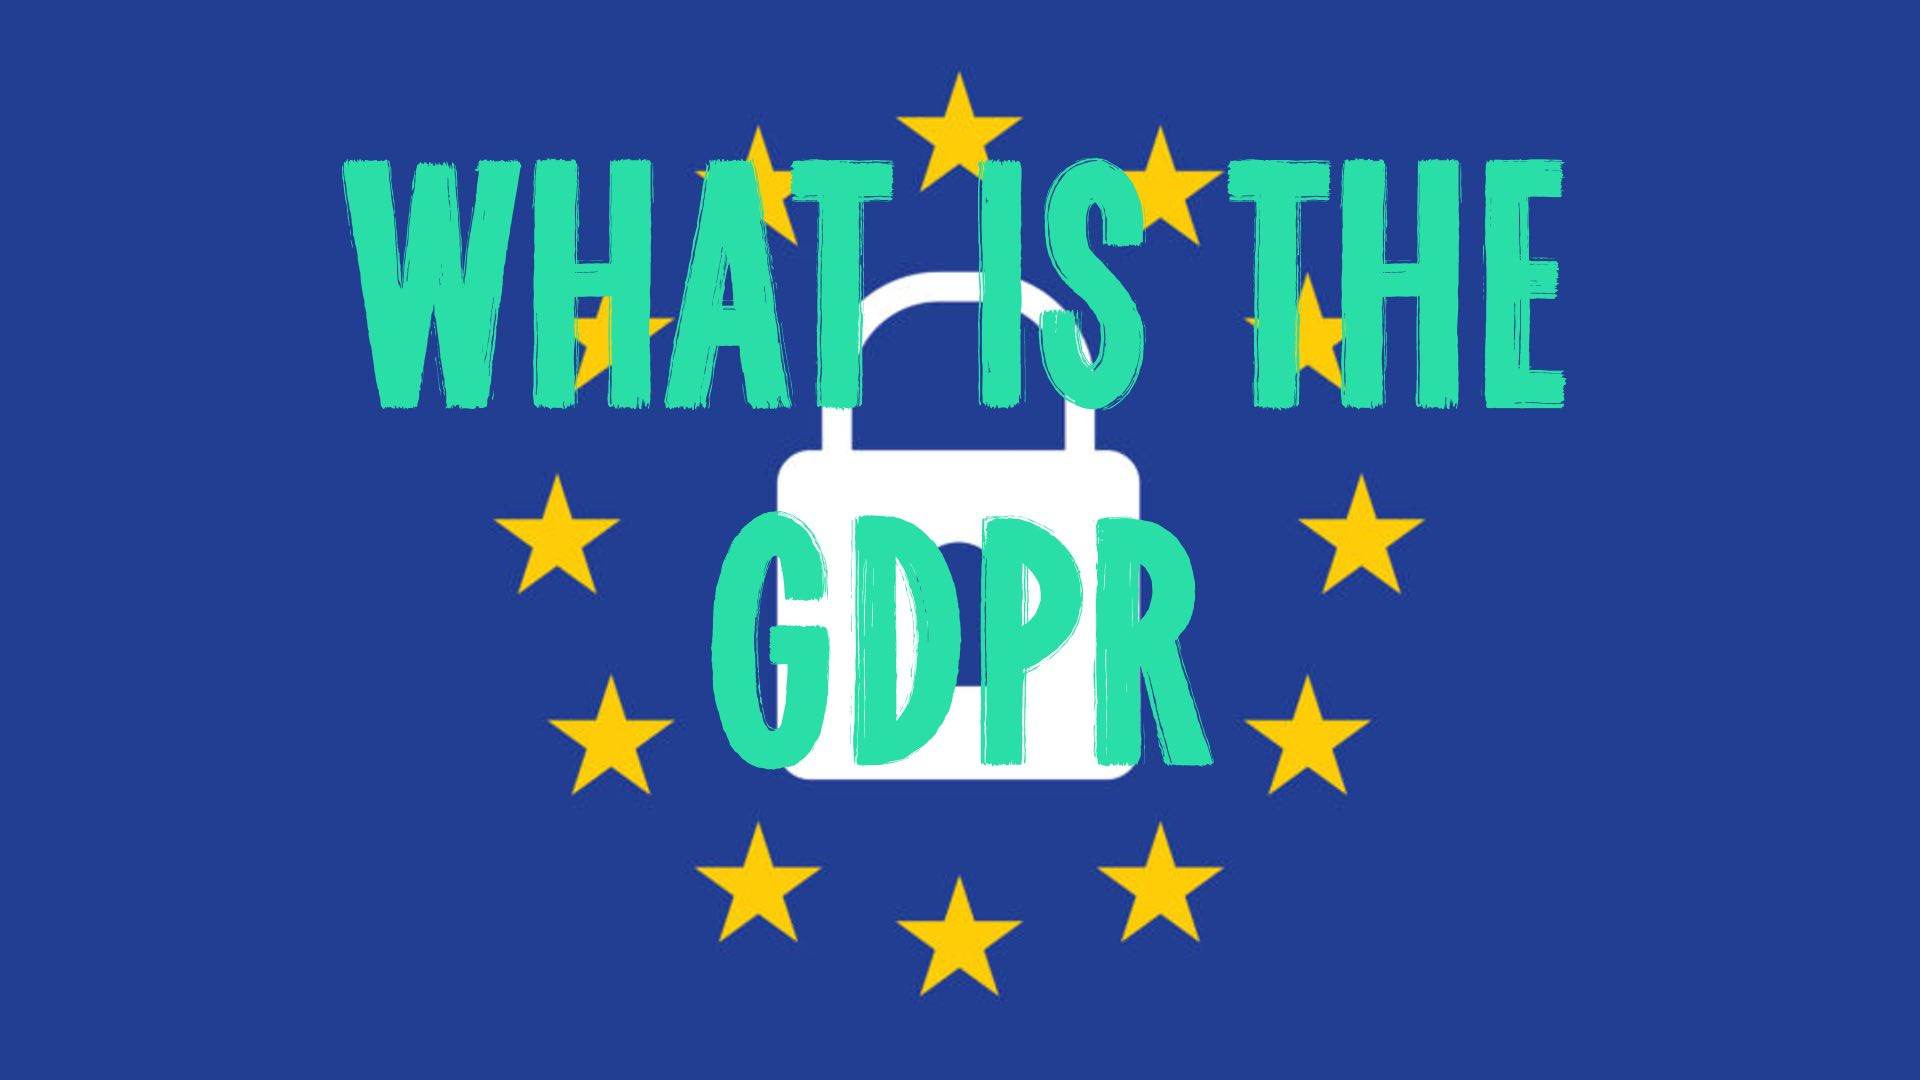 WHAT-IS-THE-GDPR